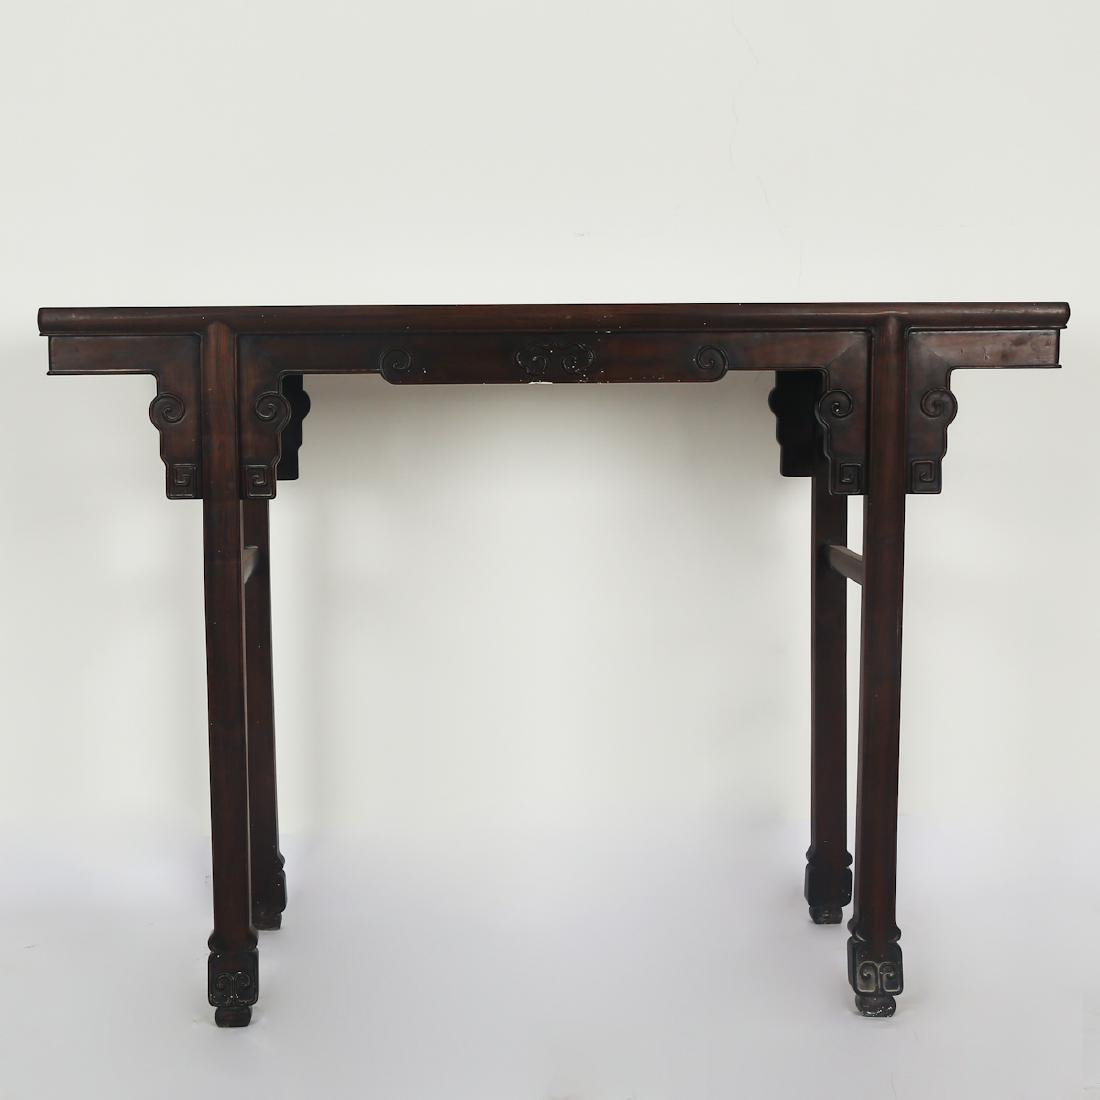 CHINESE HARDWOOD/ZITAN WOOD ALTER TABLE